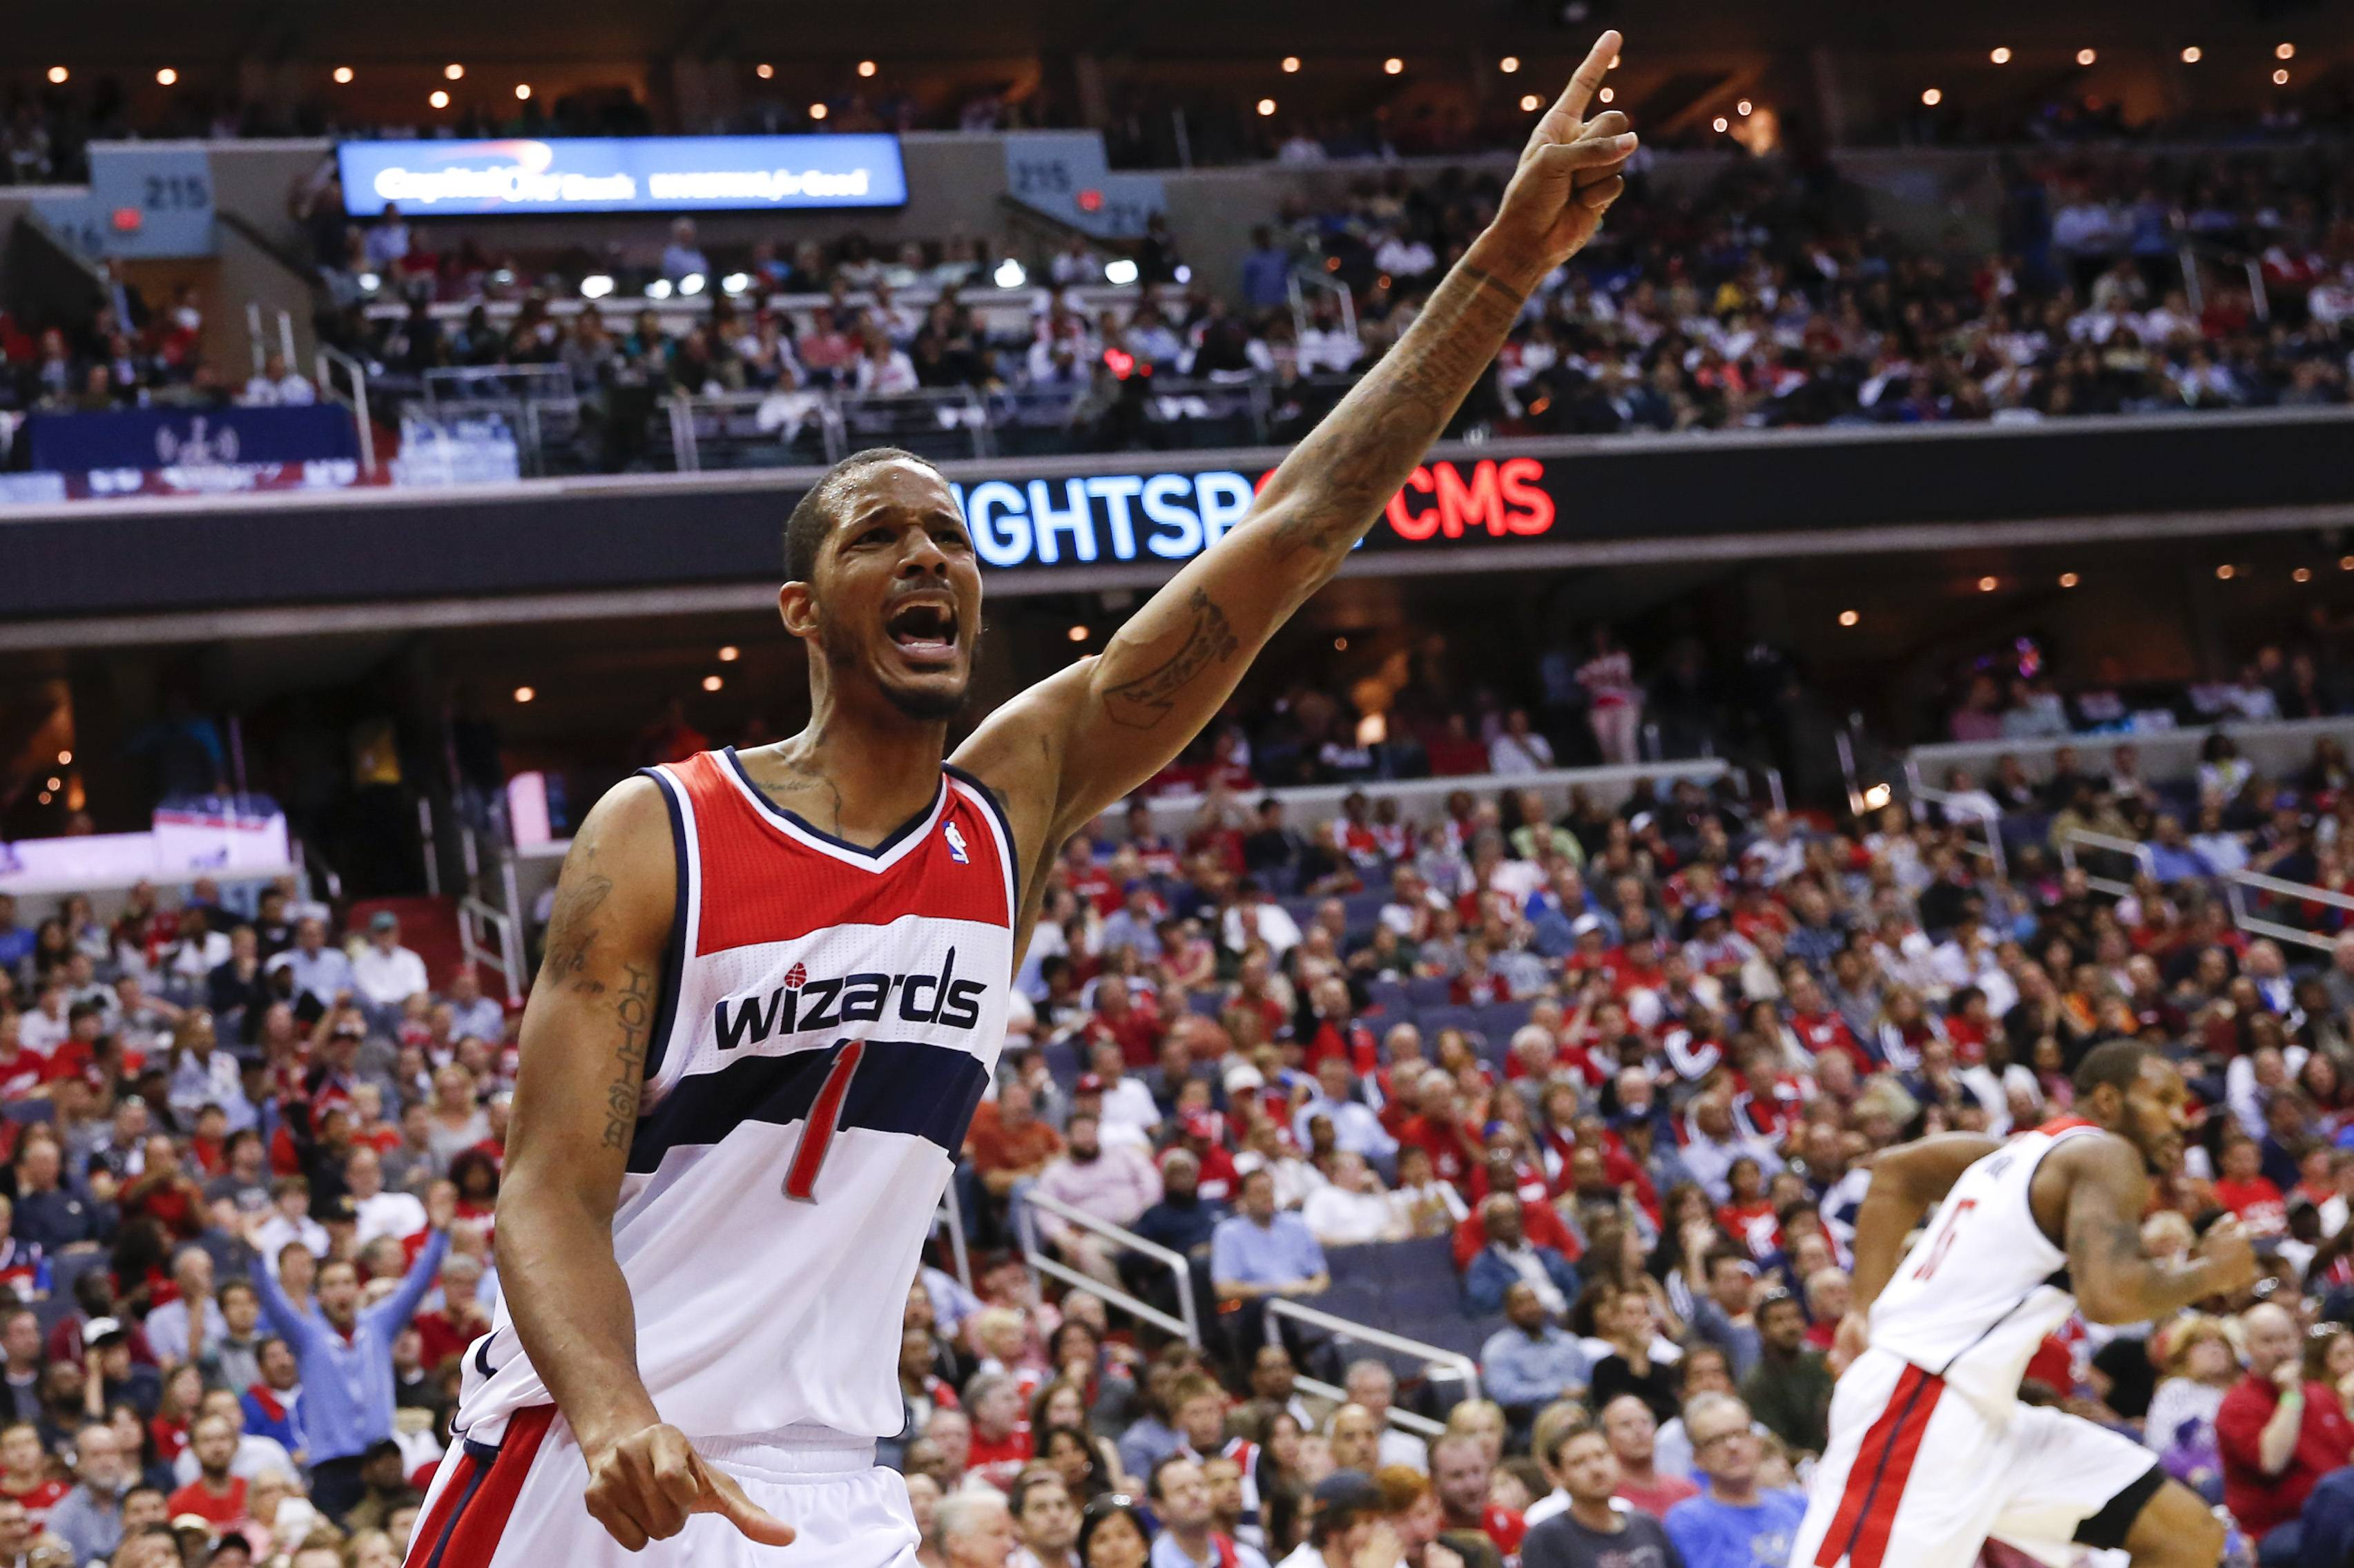 Washington Wizards forward Trevor Ariza (1) reacts to play during the second half.